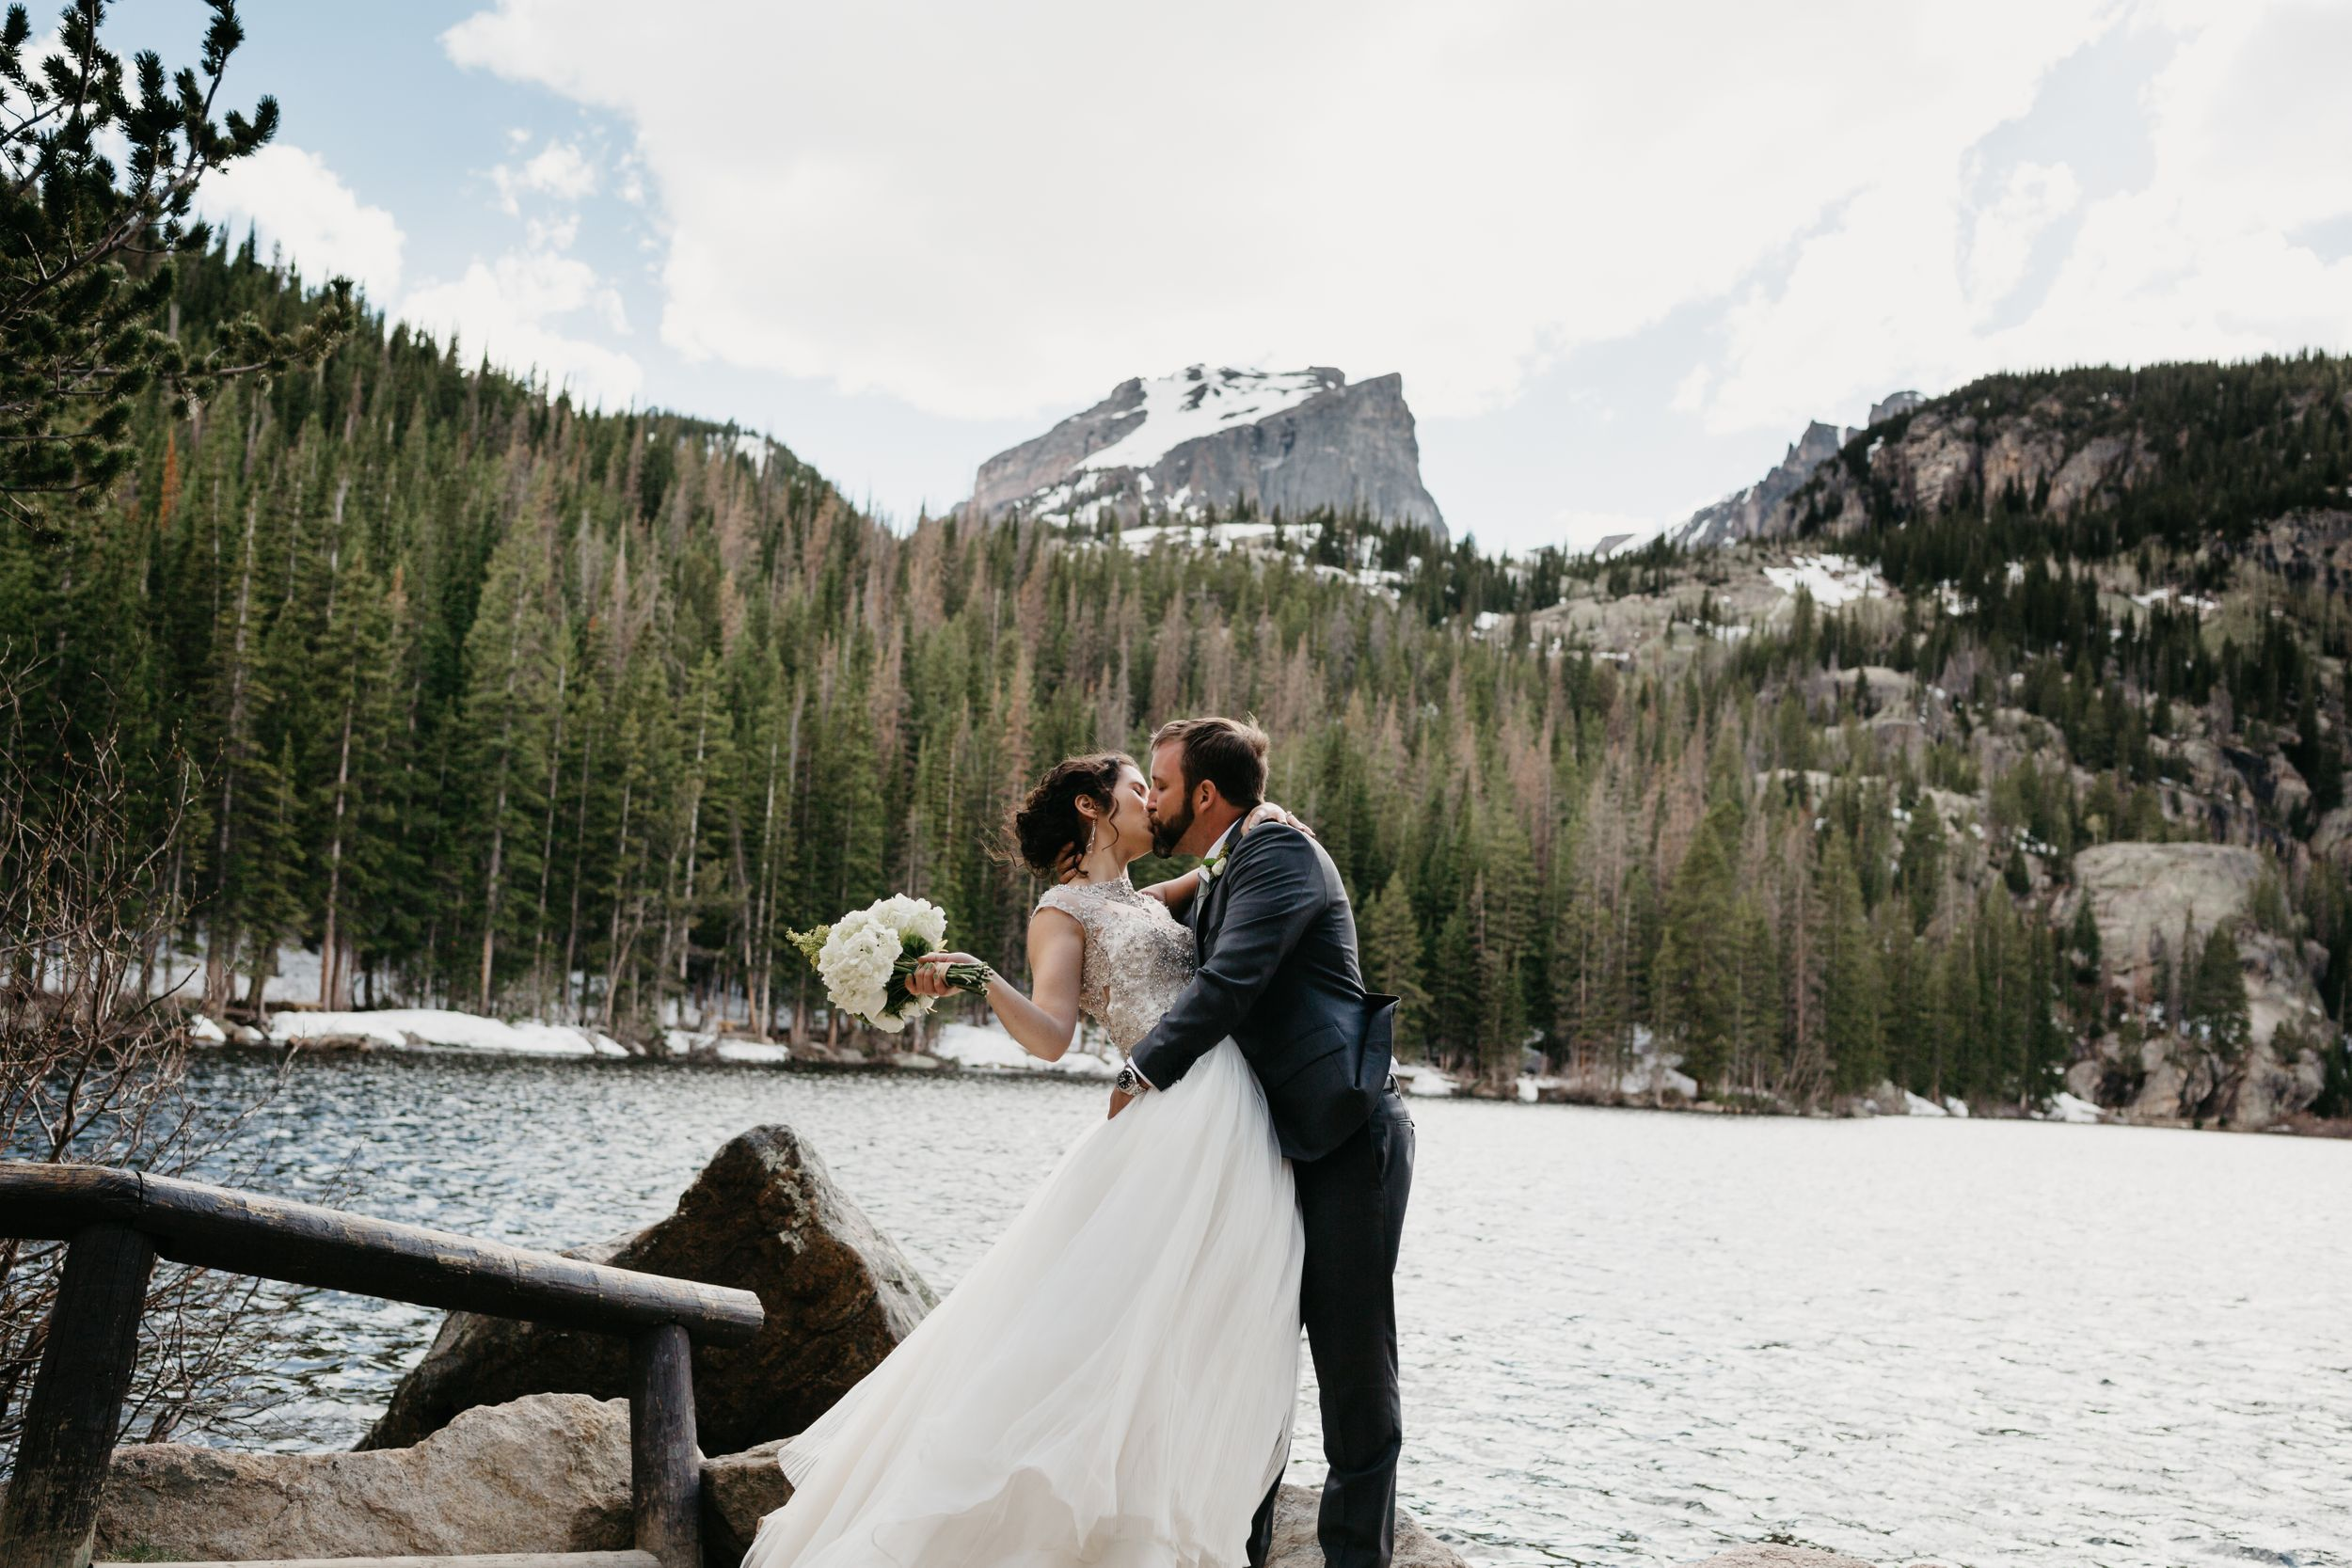 couple portraits, forest, rmnp, ymca, ceremony, photography, colorado, estes park, forest wedding, classy, timeless